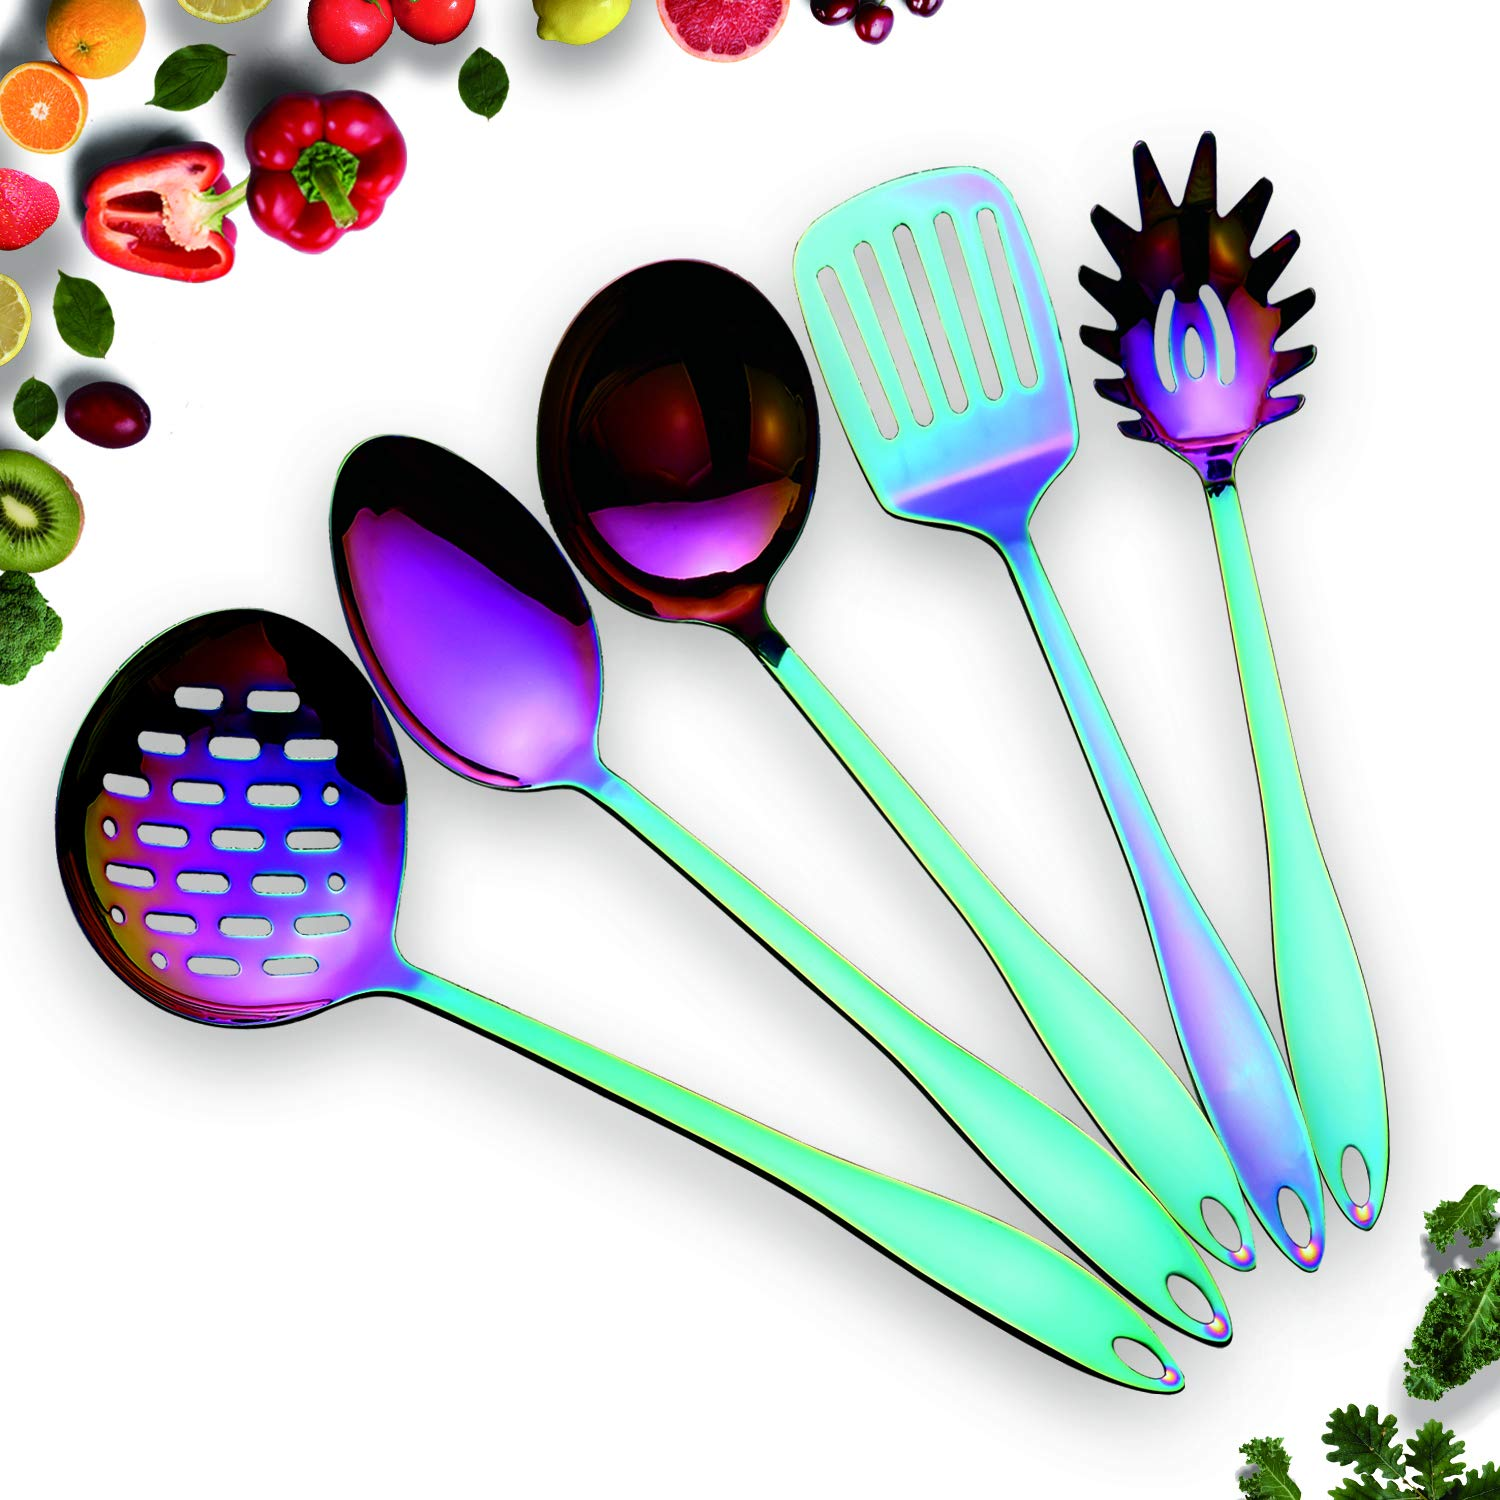 HOMQUEN Stainless Steel Kitchen Utensil Set - 5 Cooking Utensils, Rainbow Color Nonstick Kitchen Utensils Set, Colorful Titanium Plated Set Kitchen Tools Gadgets by HOMQUEN